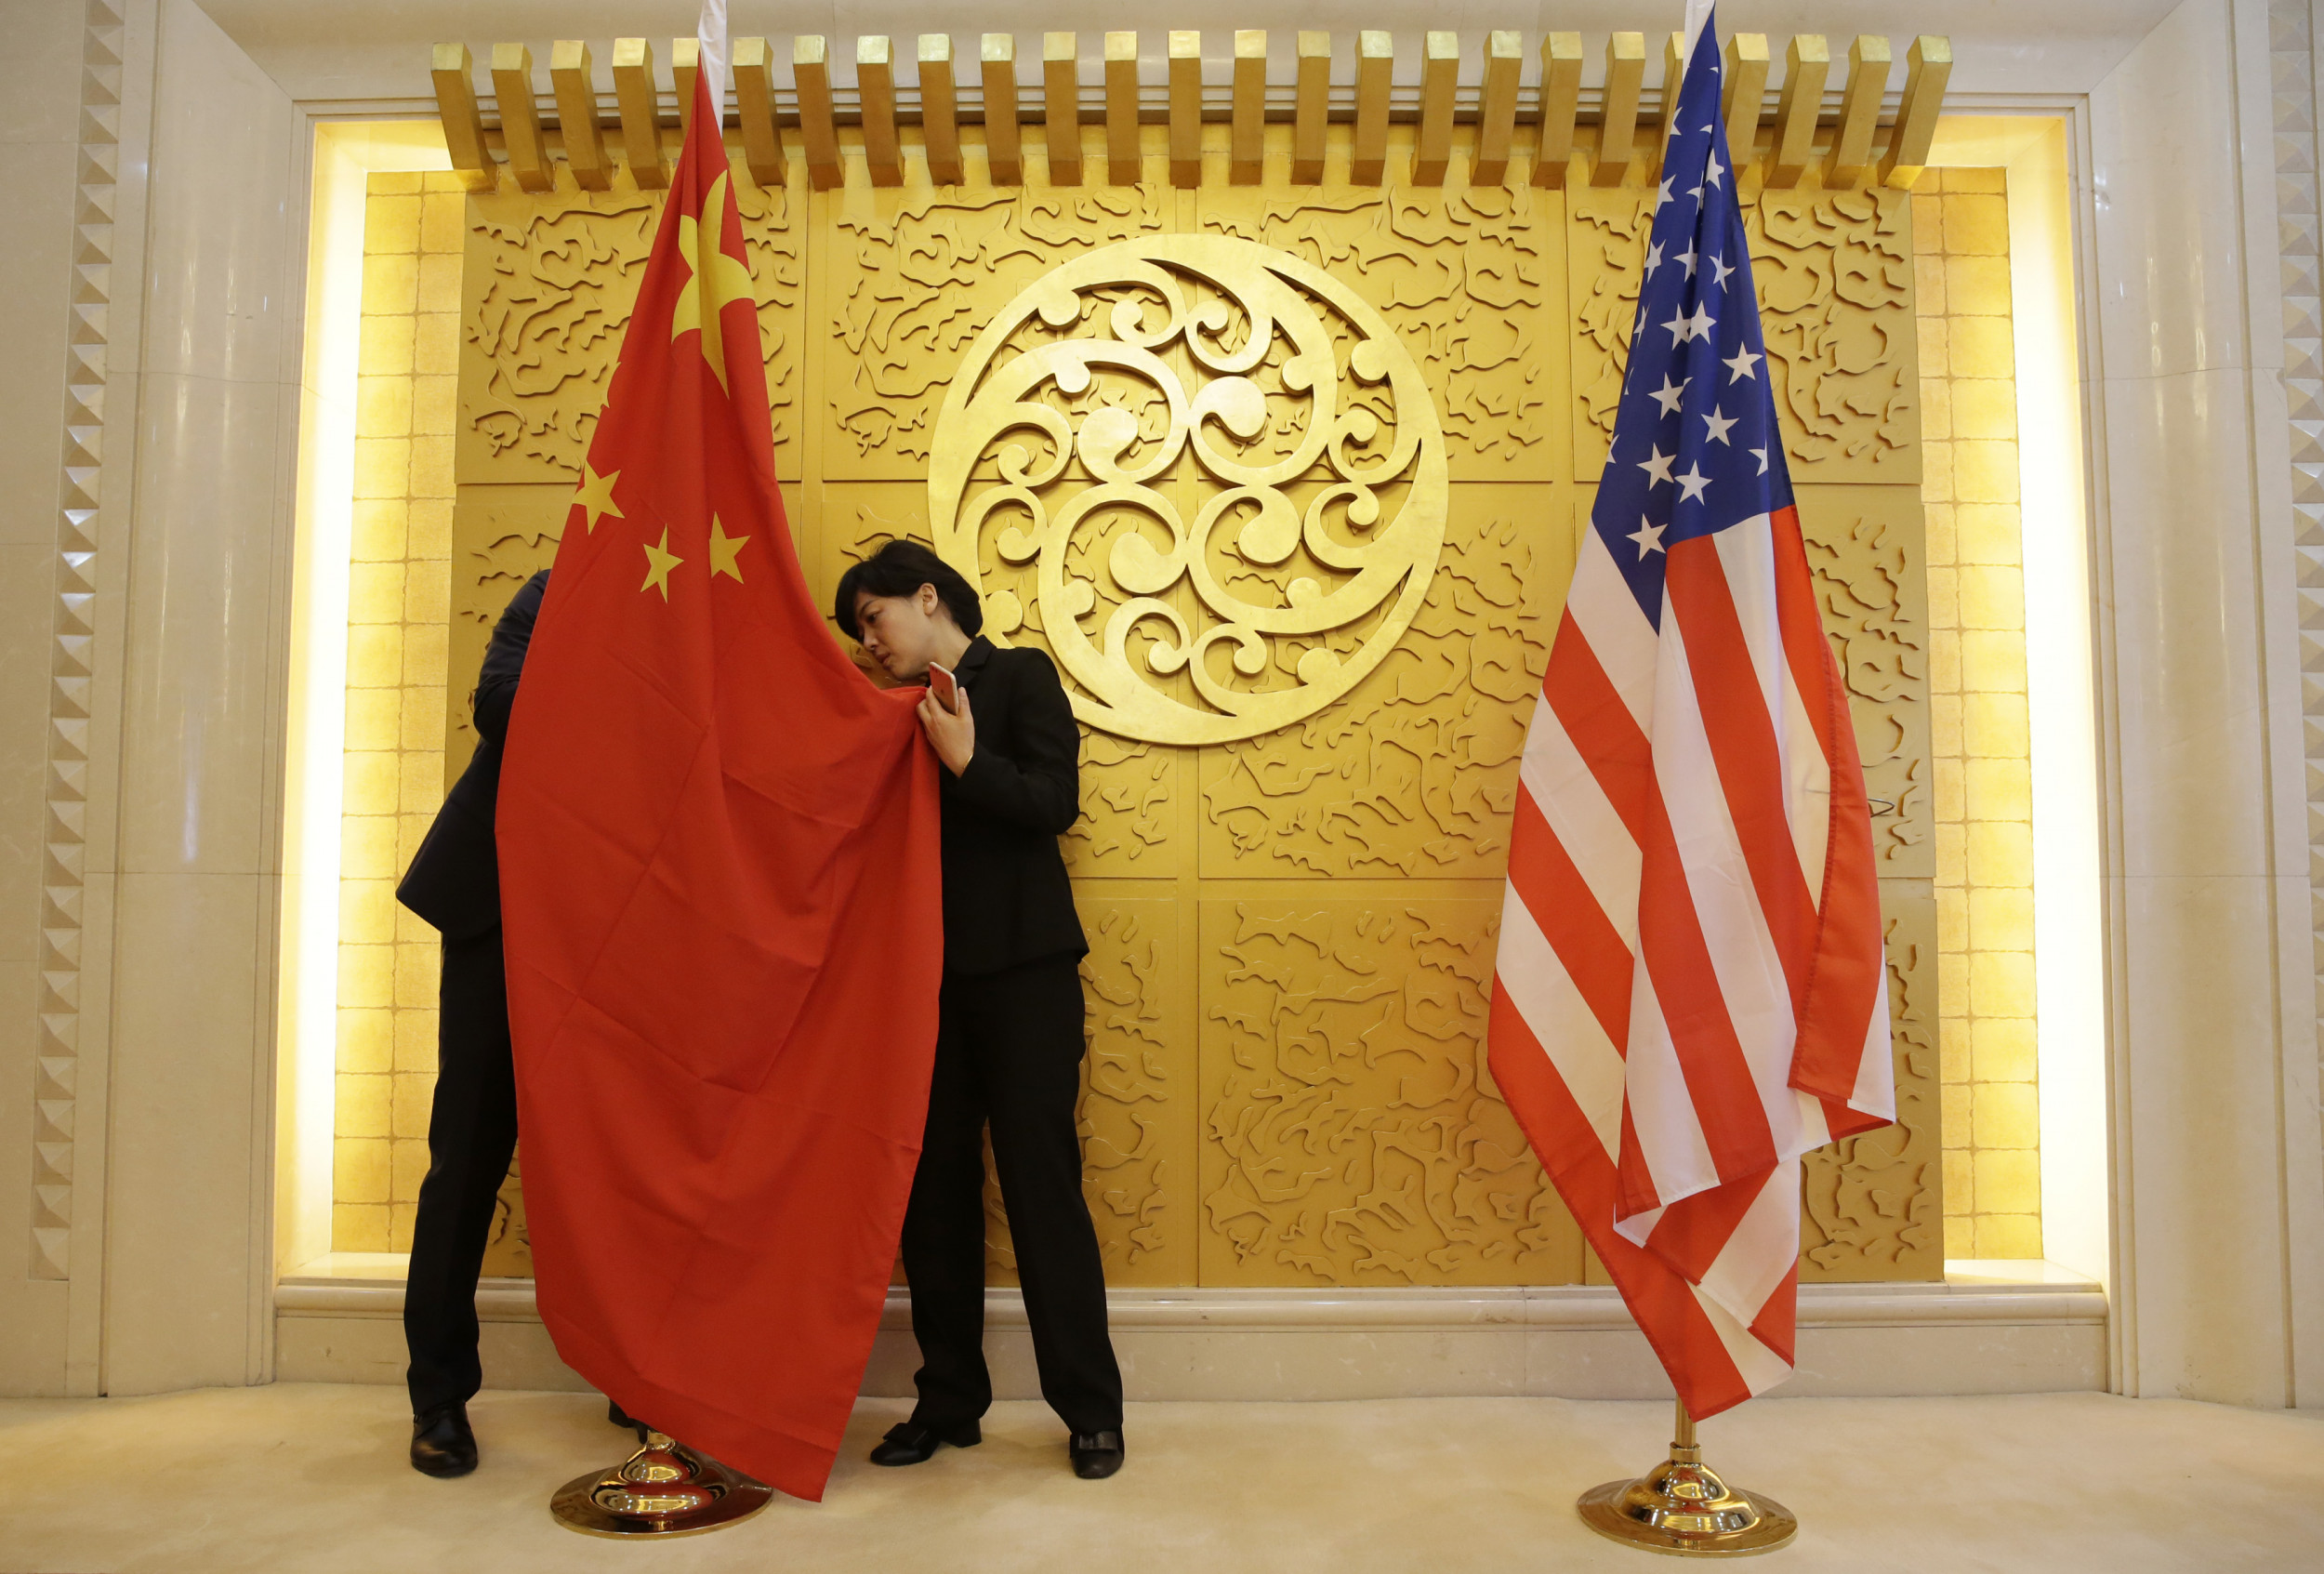 A new U.S. strategy for China could allow both nations to win, experts say